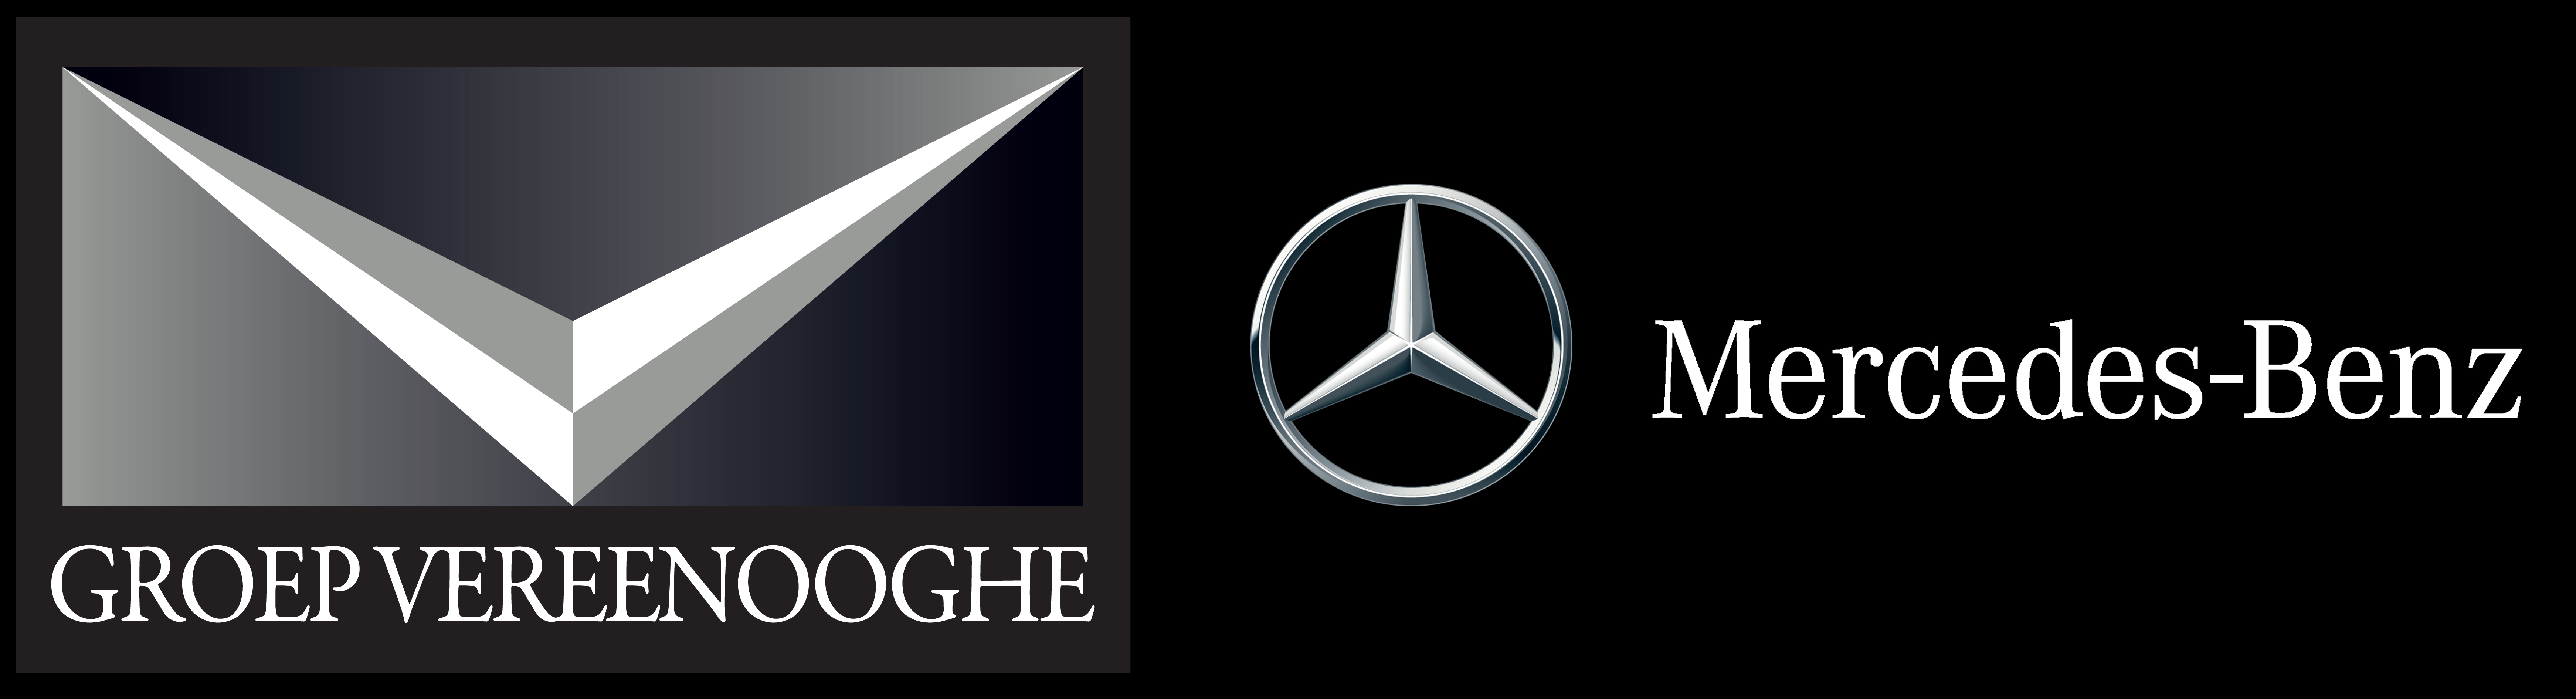 Vereenooghe Mercedes - 2014